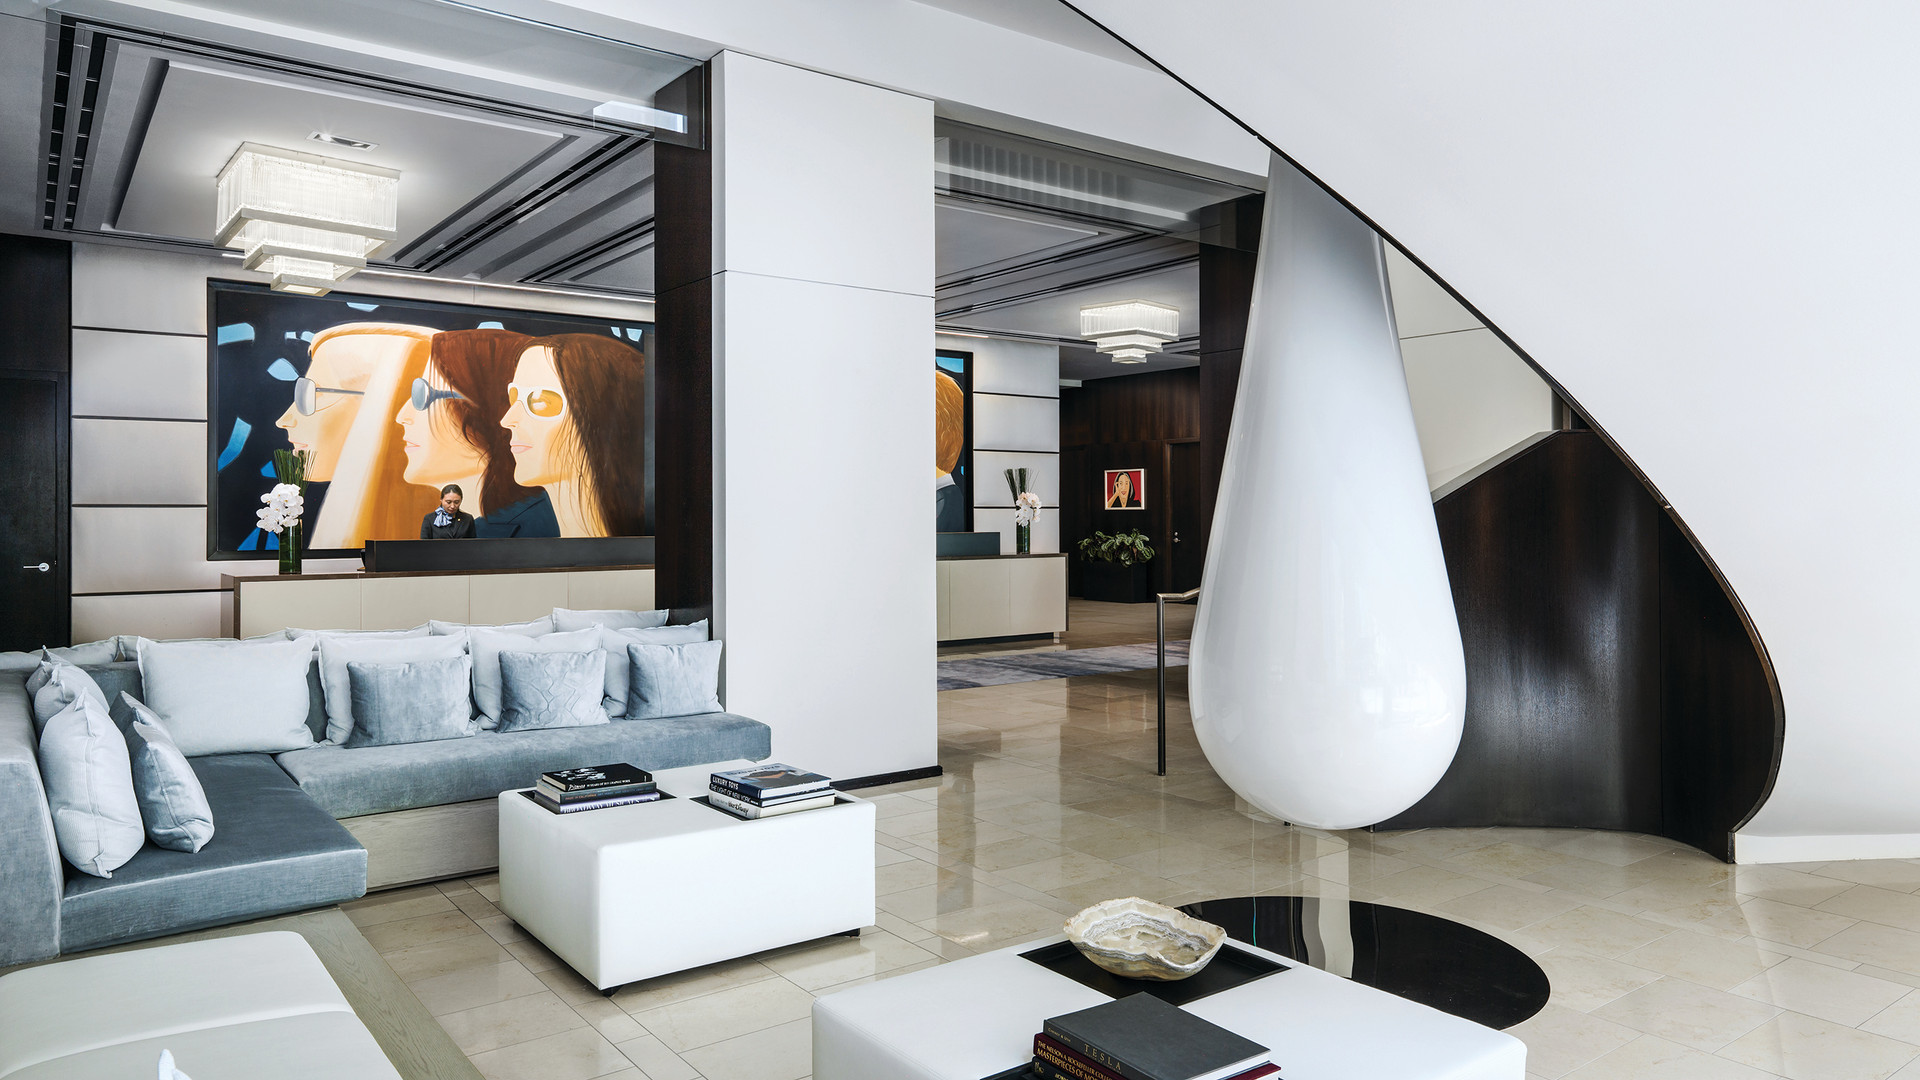 Couture by Langham is a by invitation-only program that provides highly personalized care to members. Our membership in this program affords our clients VIP treatment at Langham hotels, including confirmed upgrades at the time of booking.